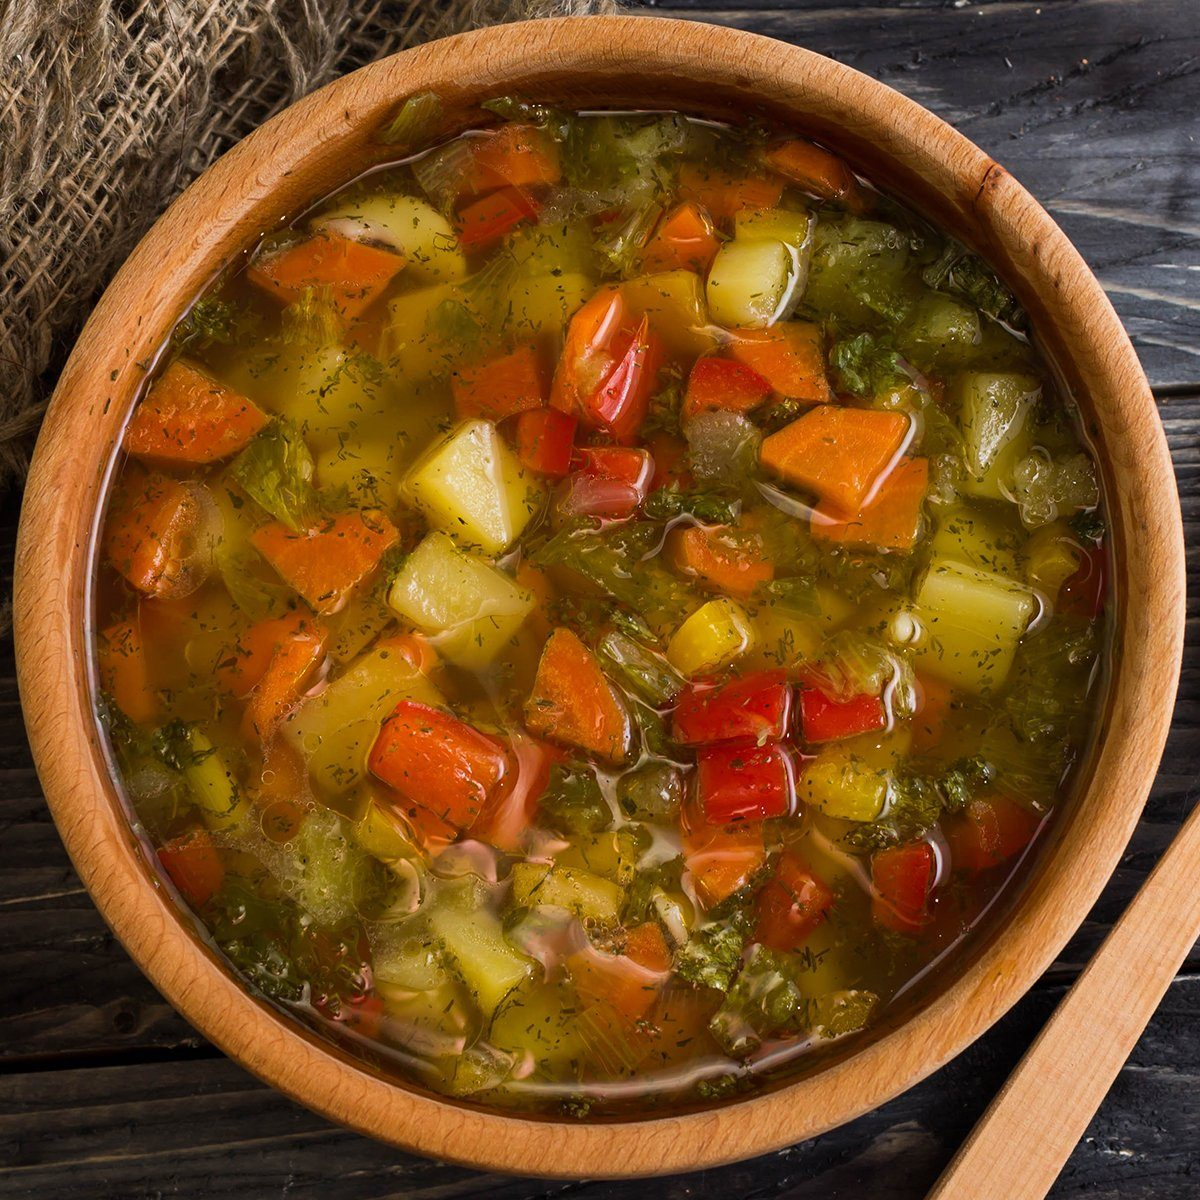 Vegetable soup in a wooden plate. Useful and tasty food.; Shutterstock ID 538094596; Job (TFH, TOH, RD, BNB, CWM, CM): TOH